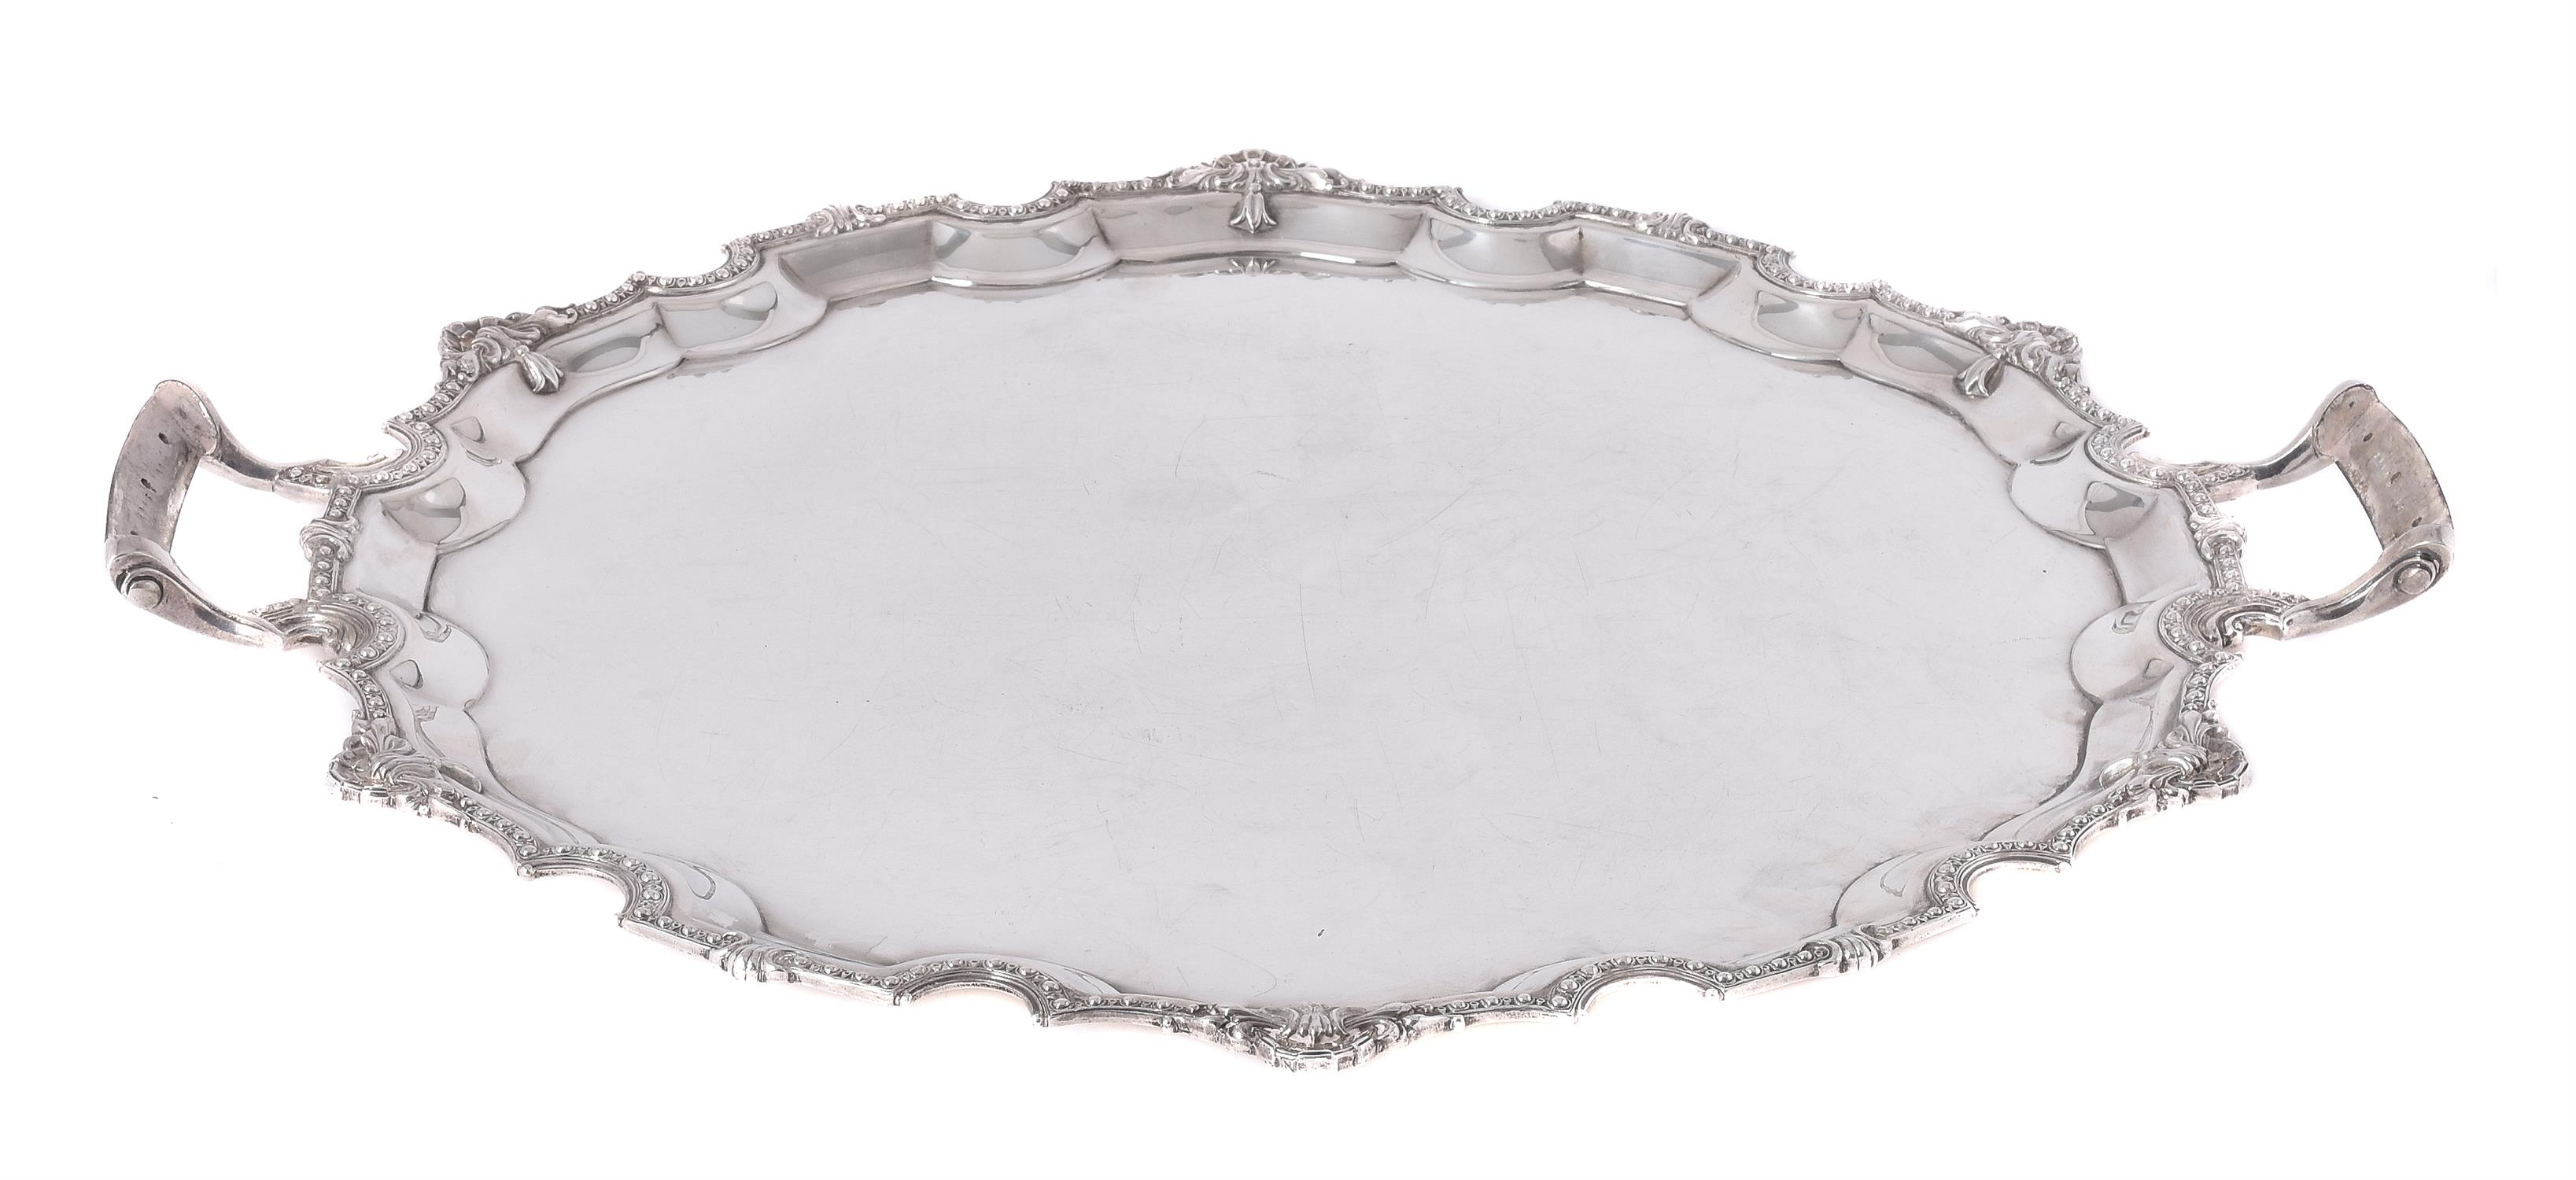 Lot 71 - A silver shaped circular twin handled tray by Mappin & Webb